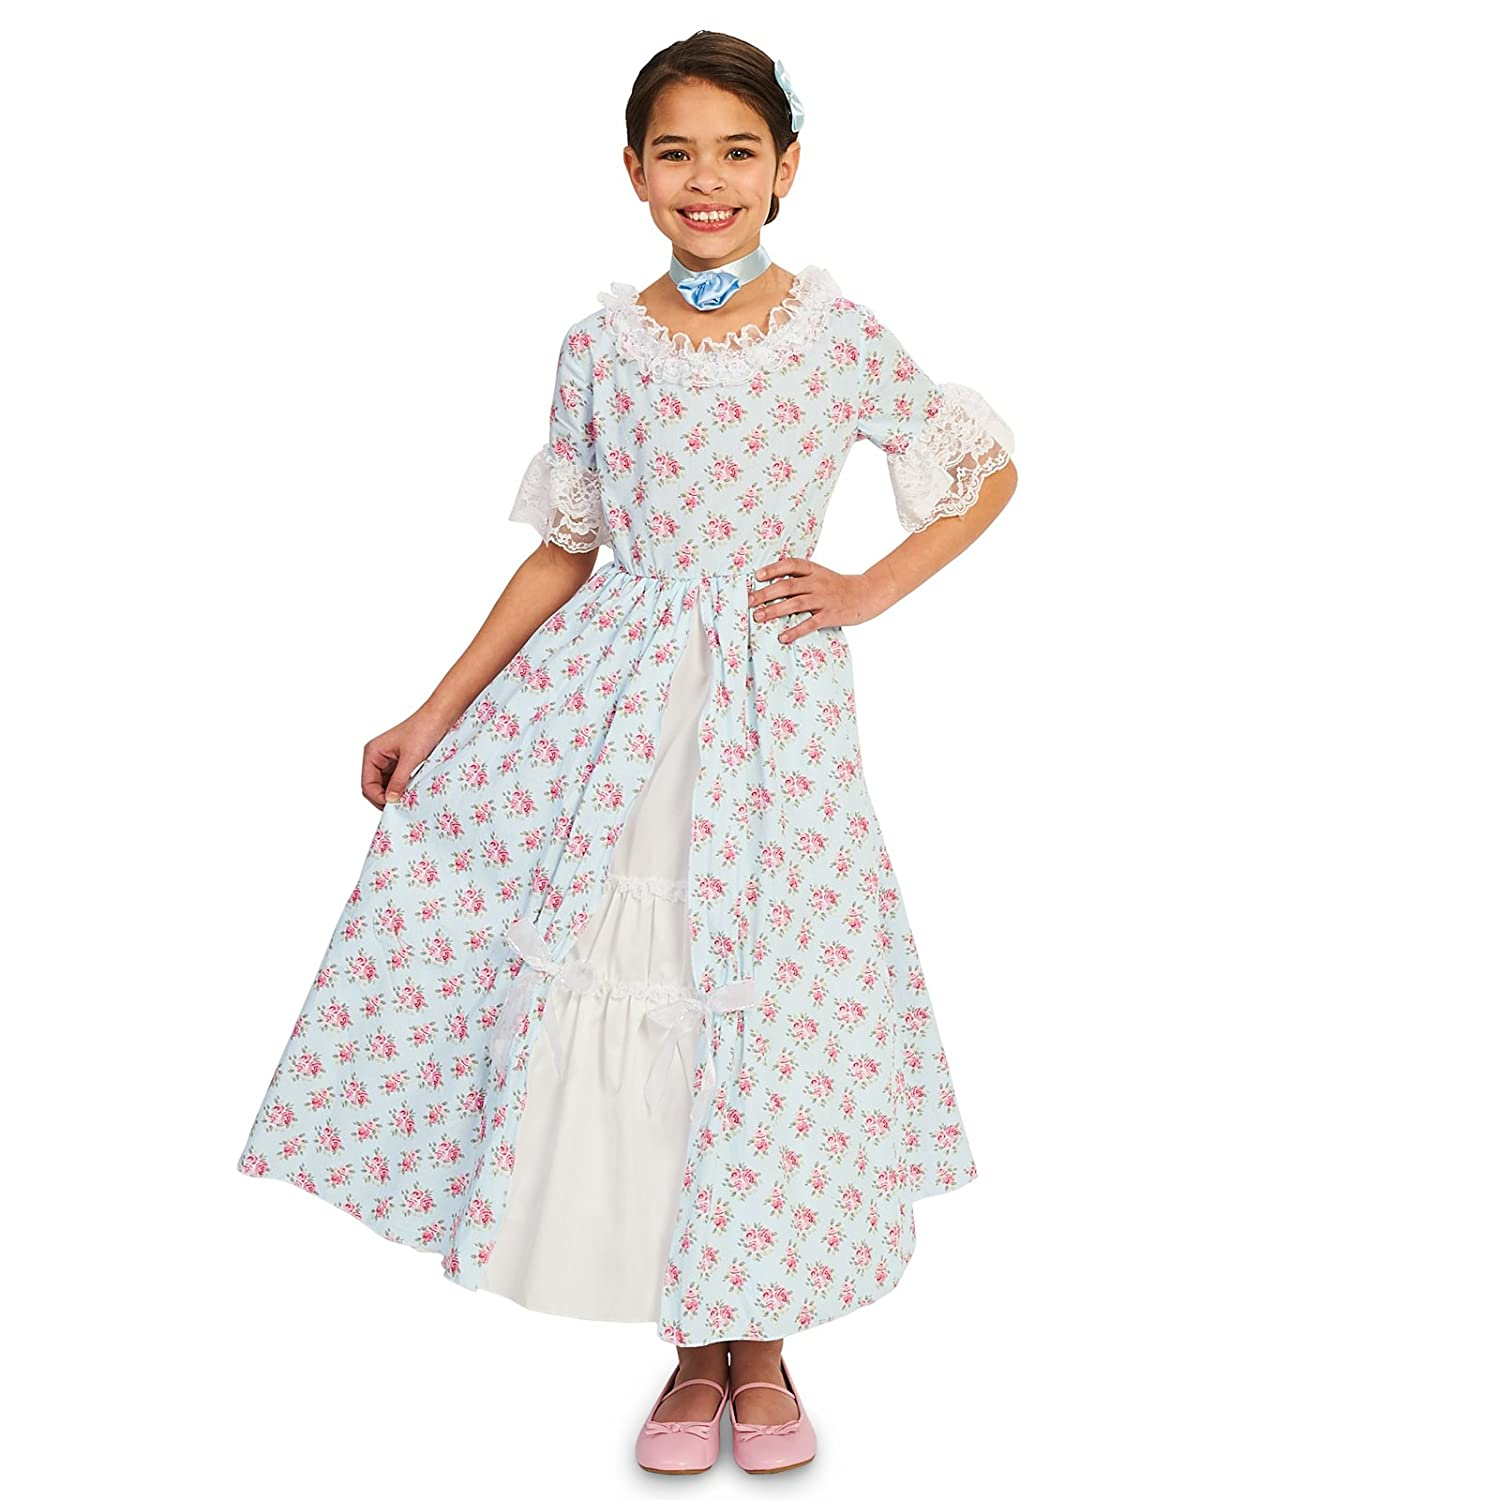 Vintage Style Children's Clothing: Girls, Boys, Baby, Toddler Partytime Costume And Lingerie (yiw Fancy Early American Child Dress $23.53 AT vintagedancer.com